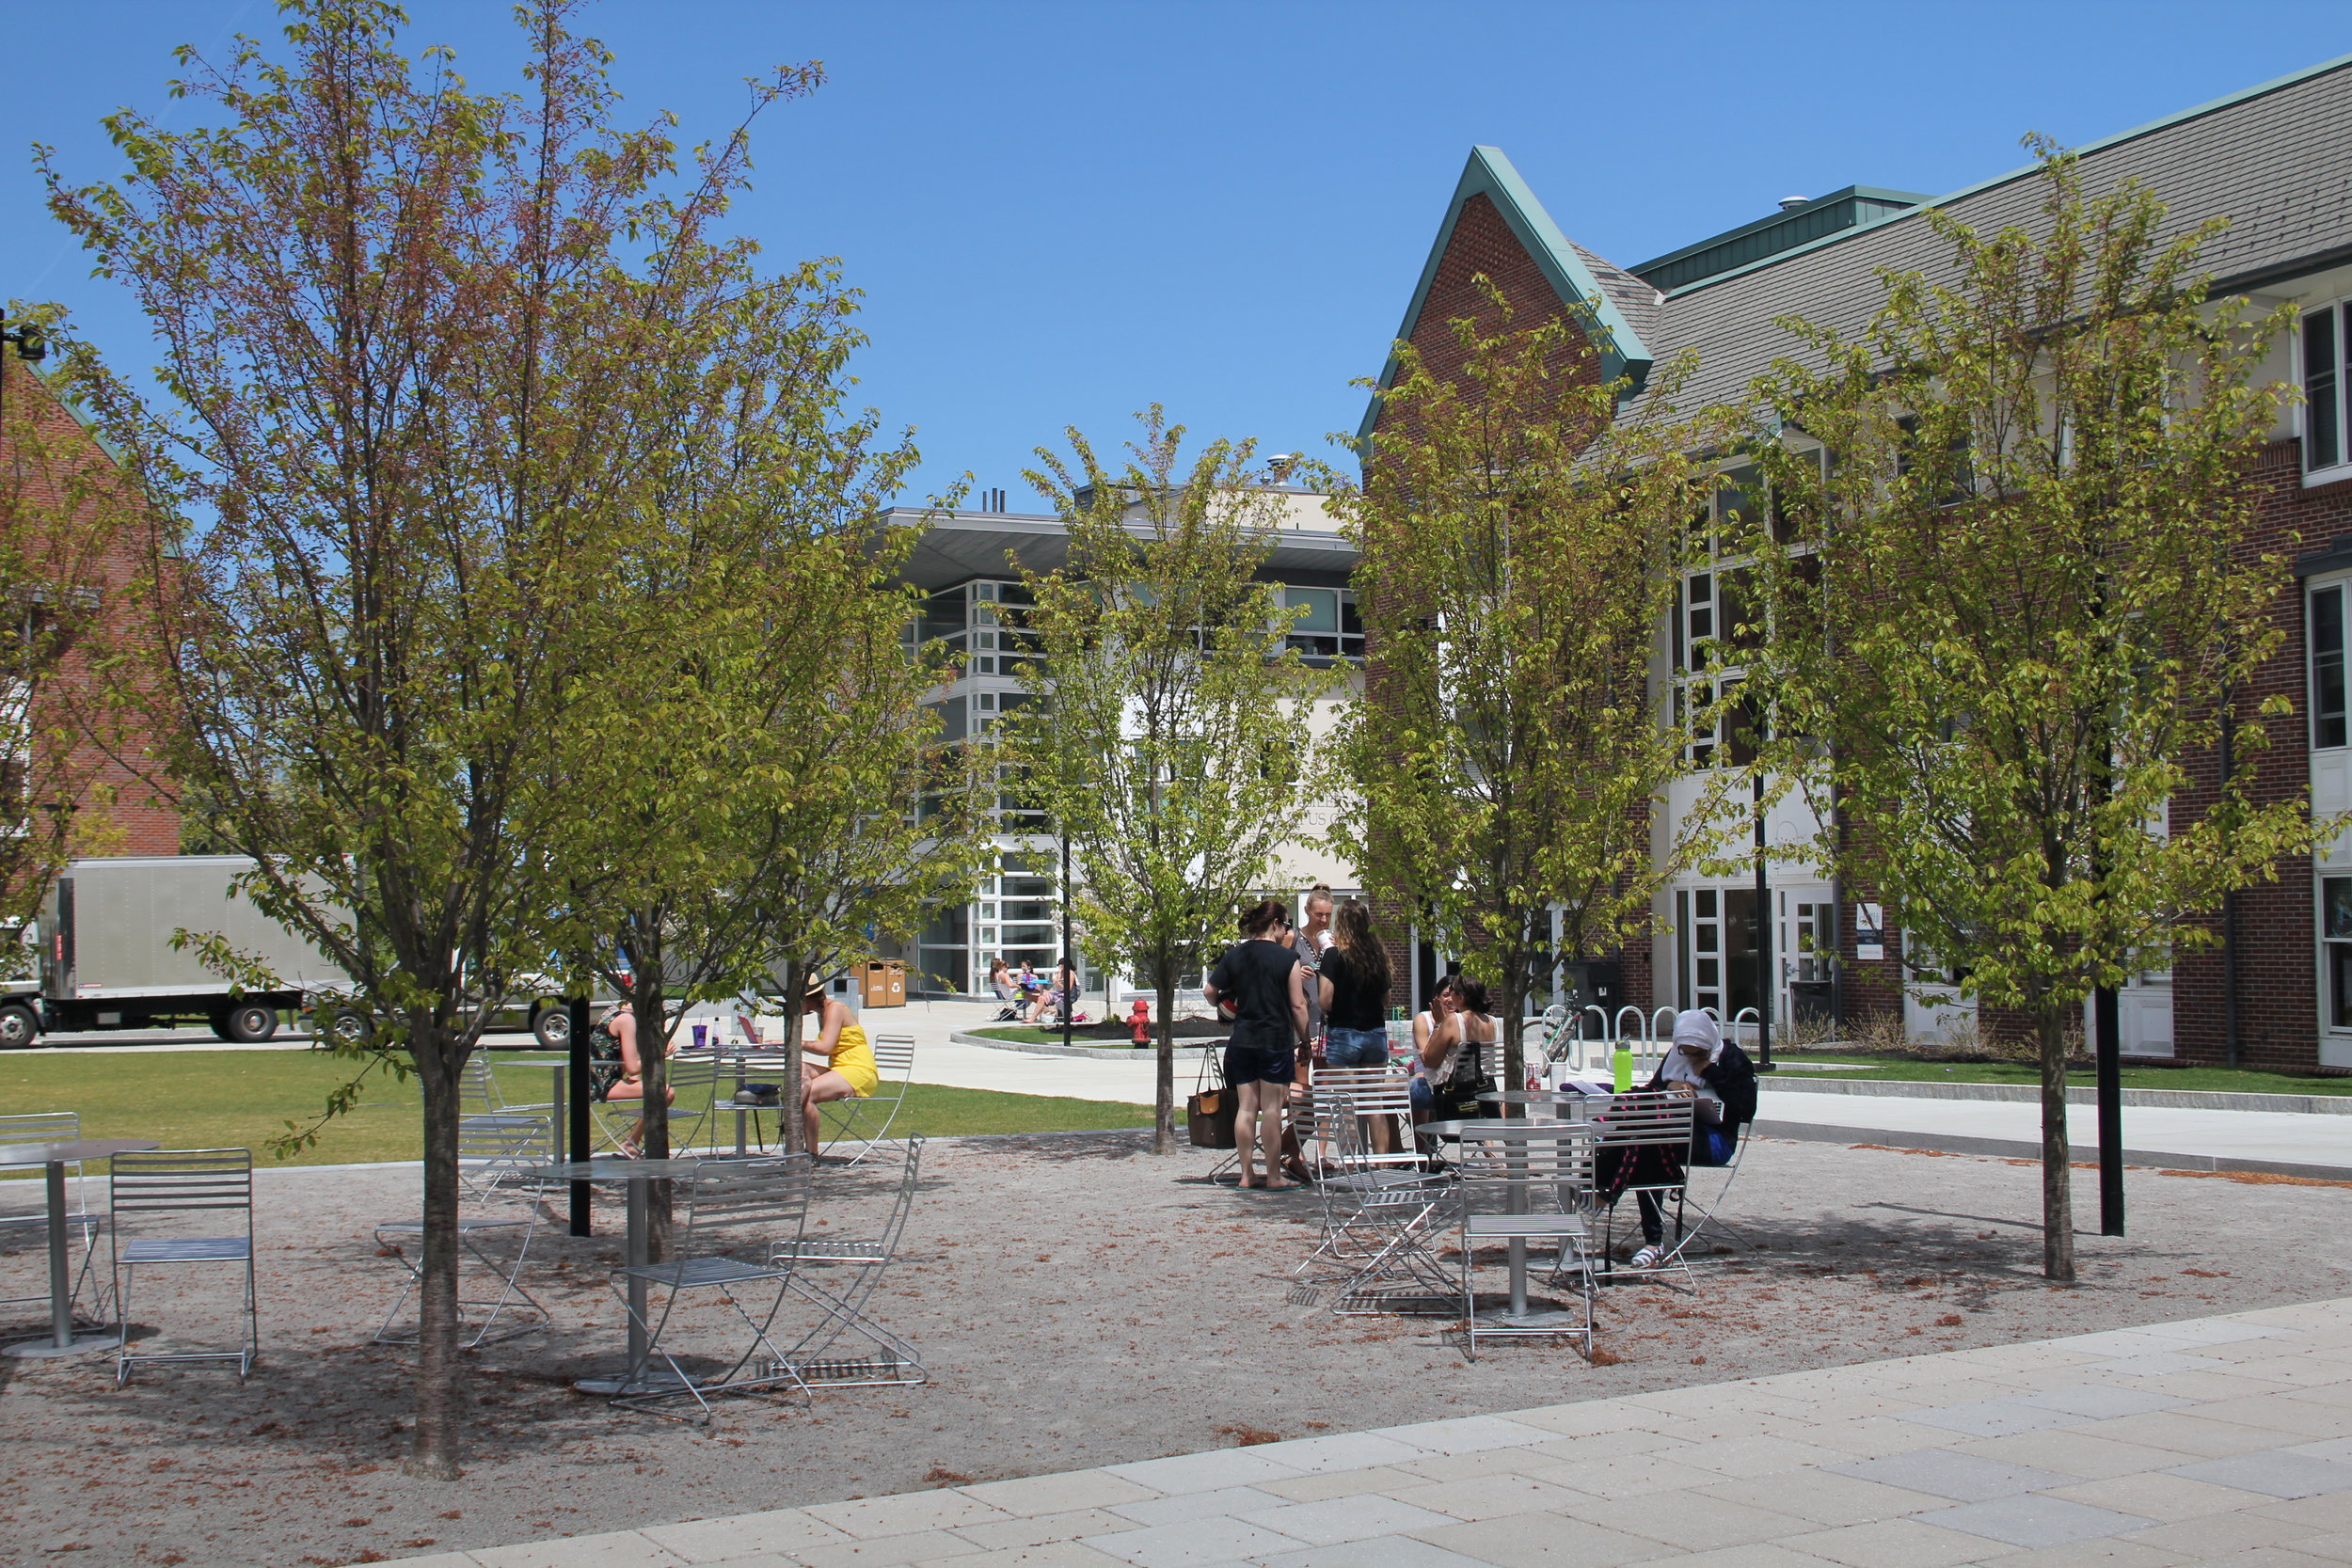 LASELL COLLEGE ARTS QUAD